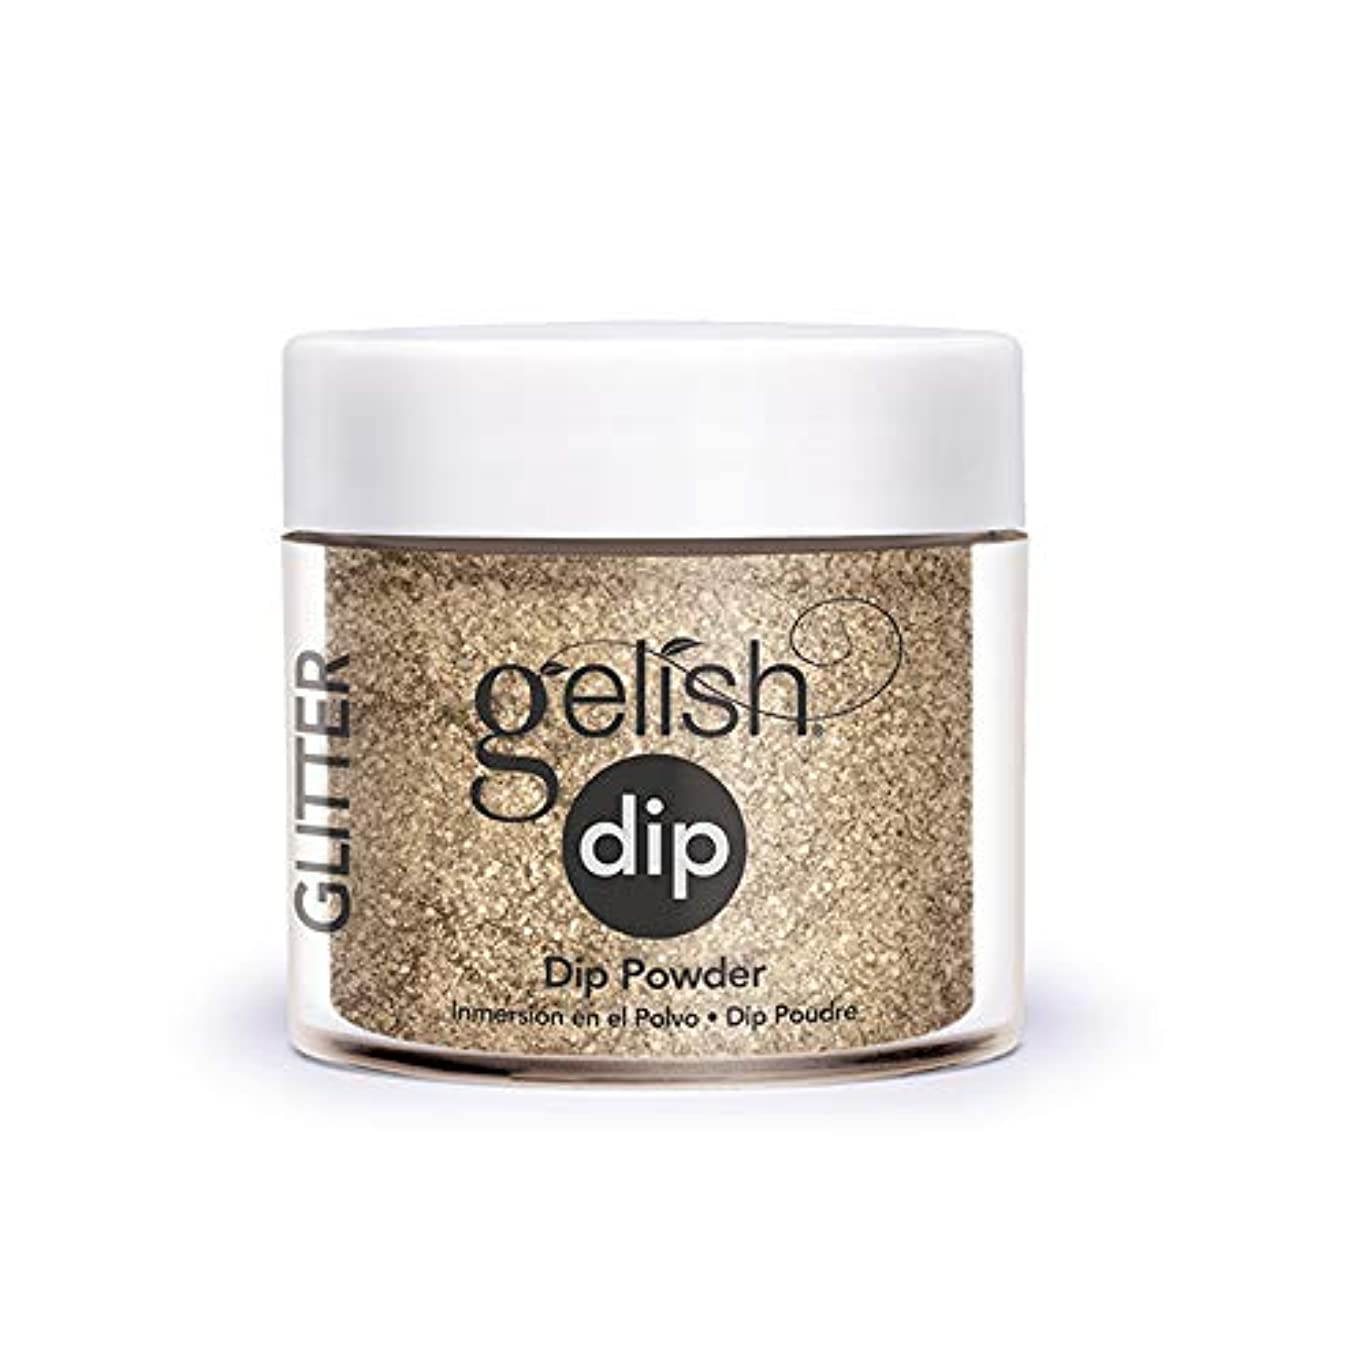 Harmony Gelish - Acrylic Dip Powder - Glitter & Gold - 23g / 0.8oz